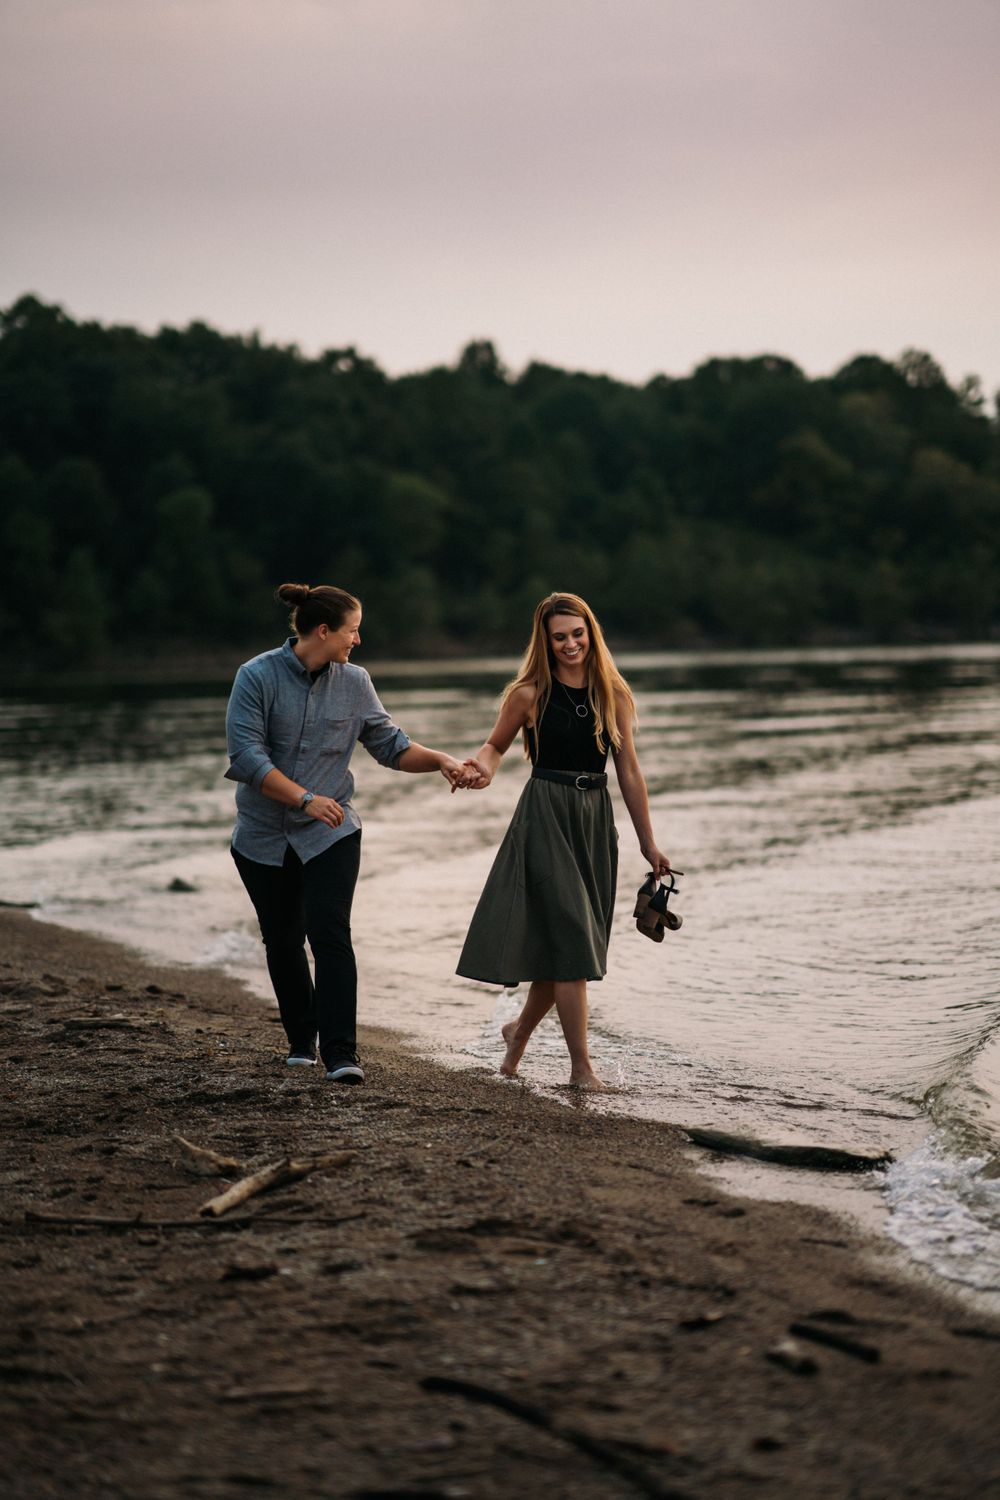 Cincinnati, Ohio photography of lbgtq+ couple at lake with their pet dogs.  Dayton photography